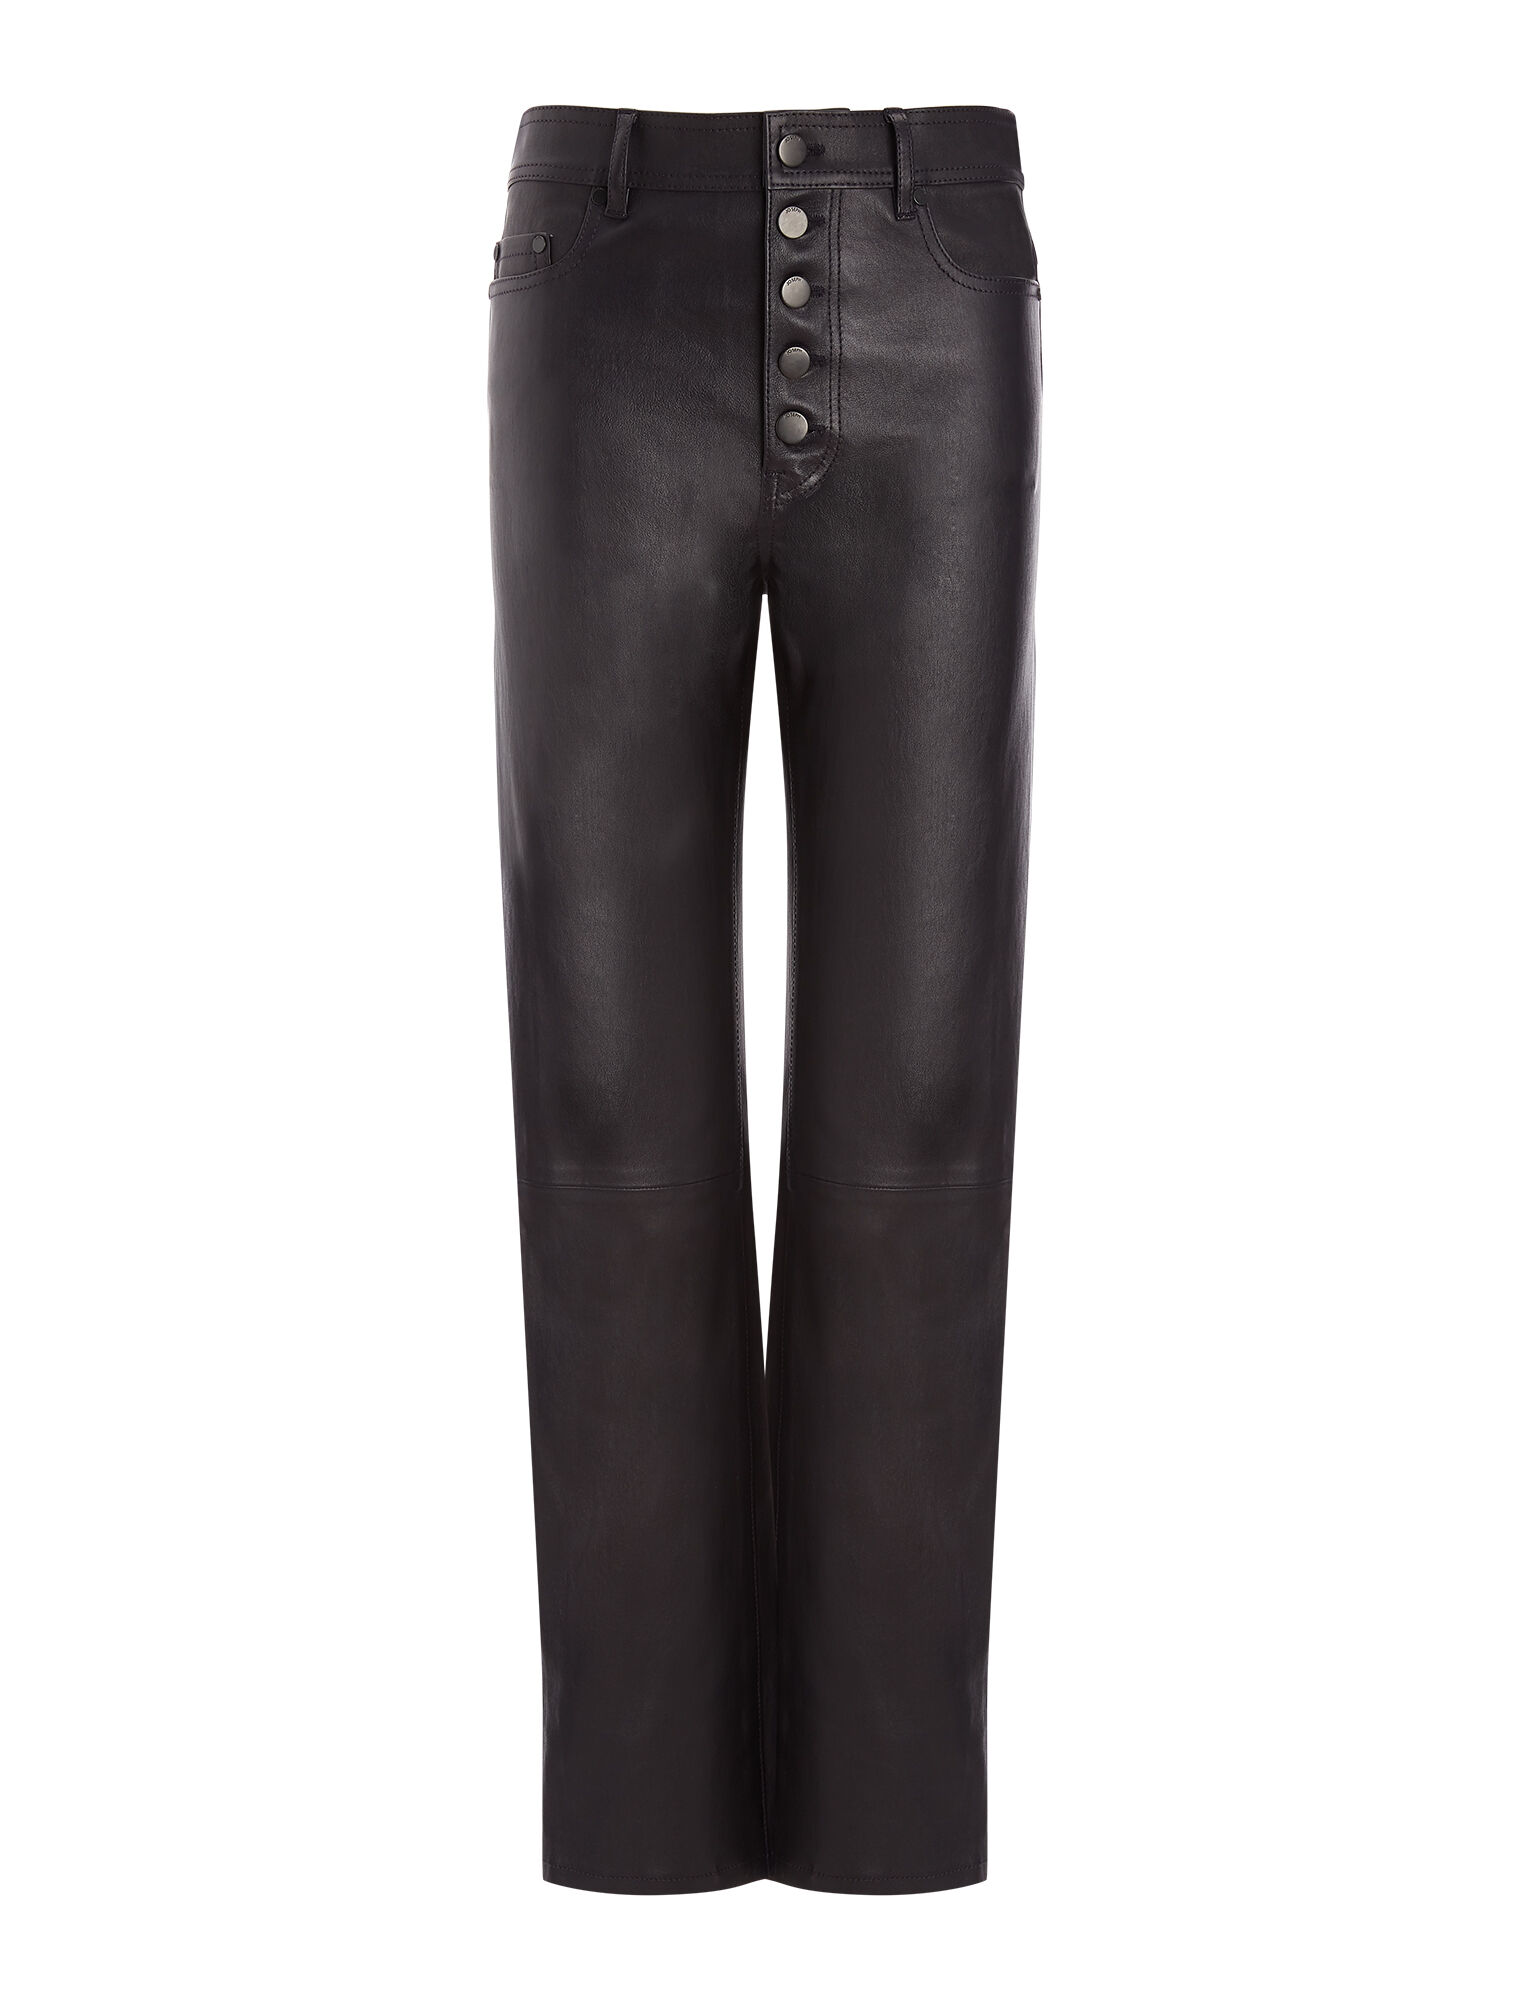 Joseph, Leather Stretch Den Trousers, in NAVY